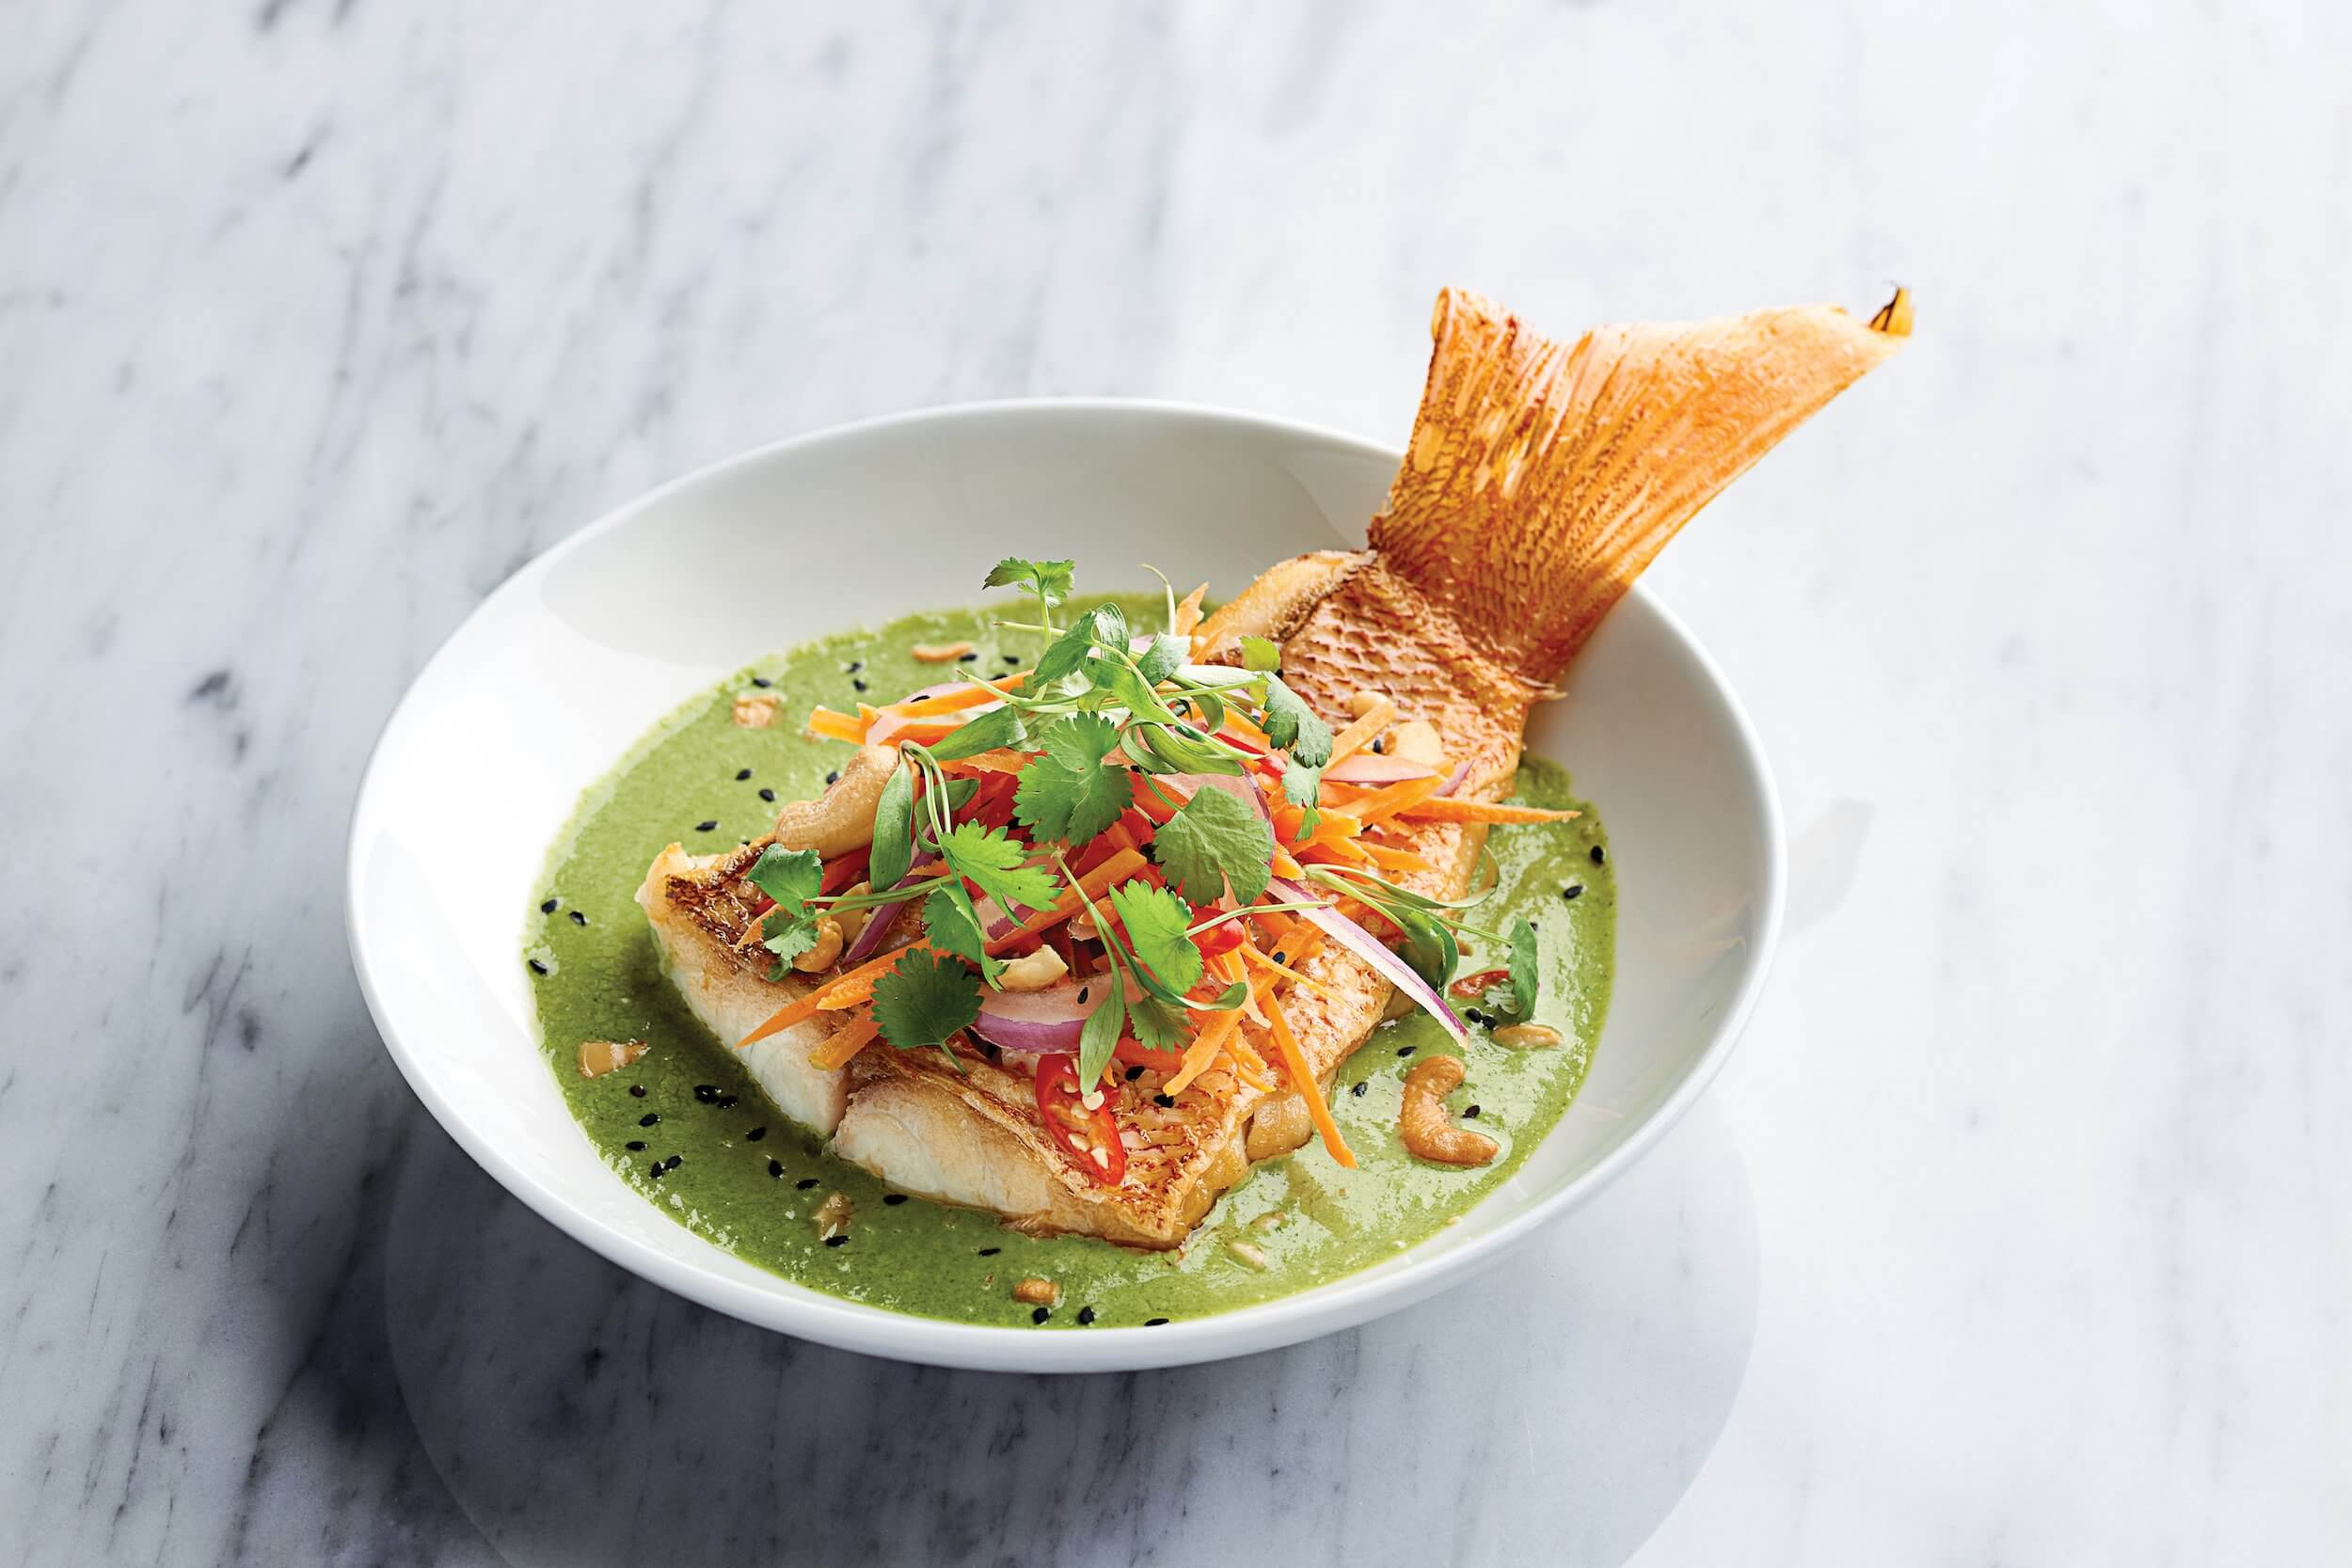 Red Snapper with green curry, vegetable slaw, cashews and lemongrass-ginger rice.